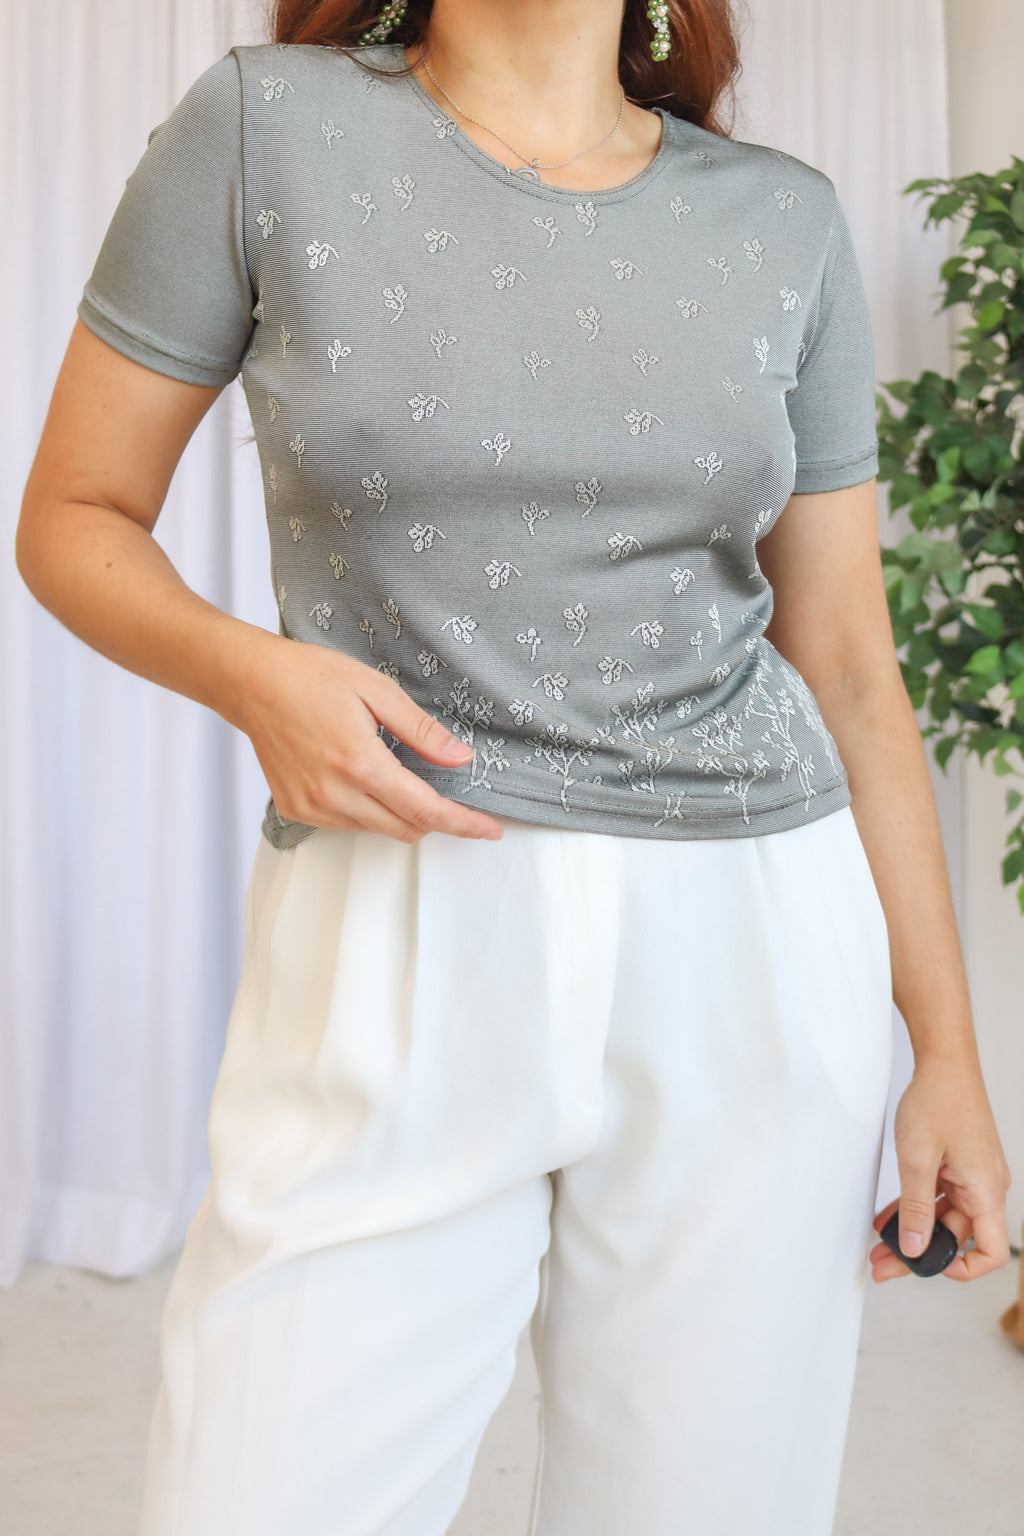 VintageFloral Embroidered T-Shirt in Silver - Dirty Disco